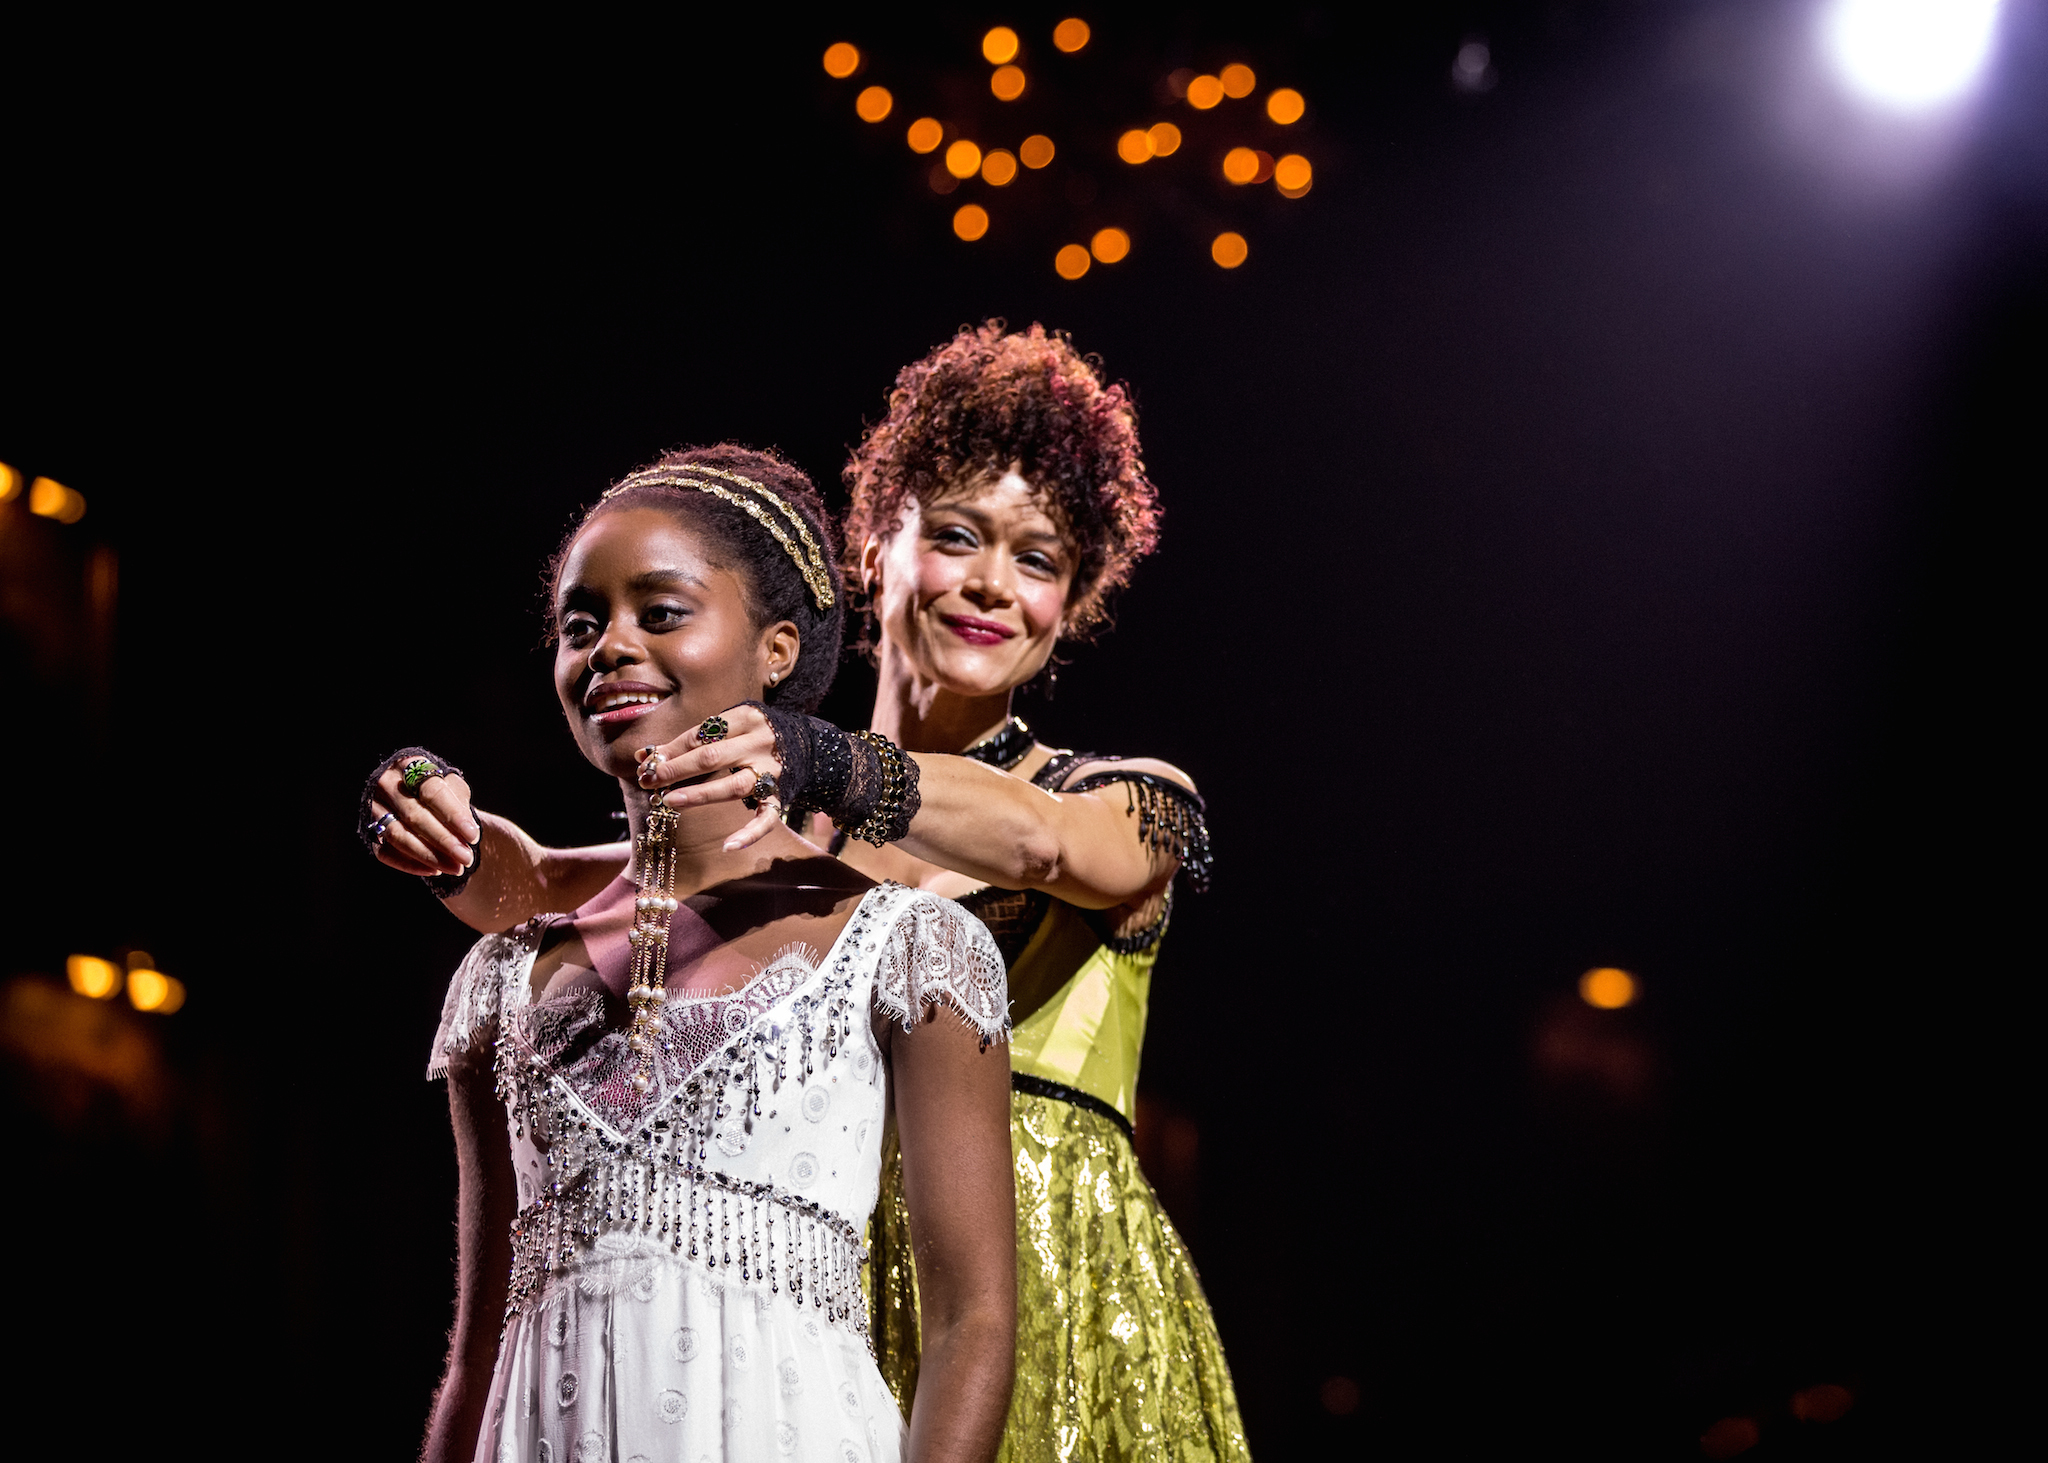 Amber Gray (Natasha, Pierre & the Great Comet of 1812, Hadestown)